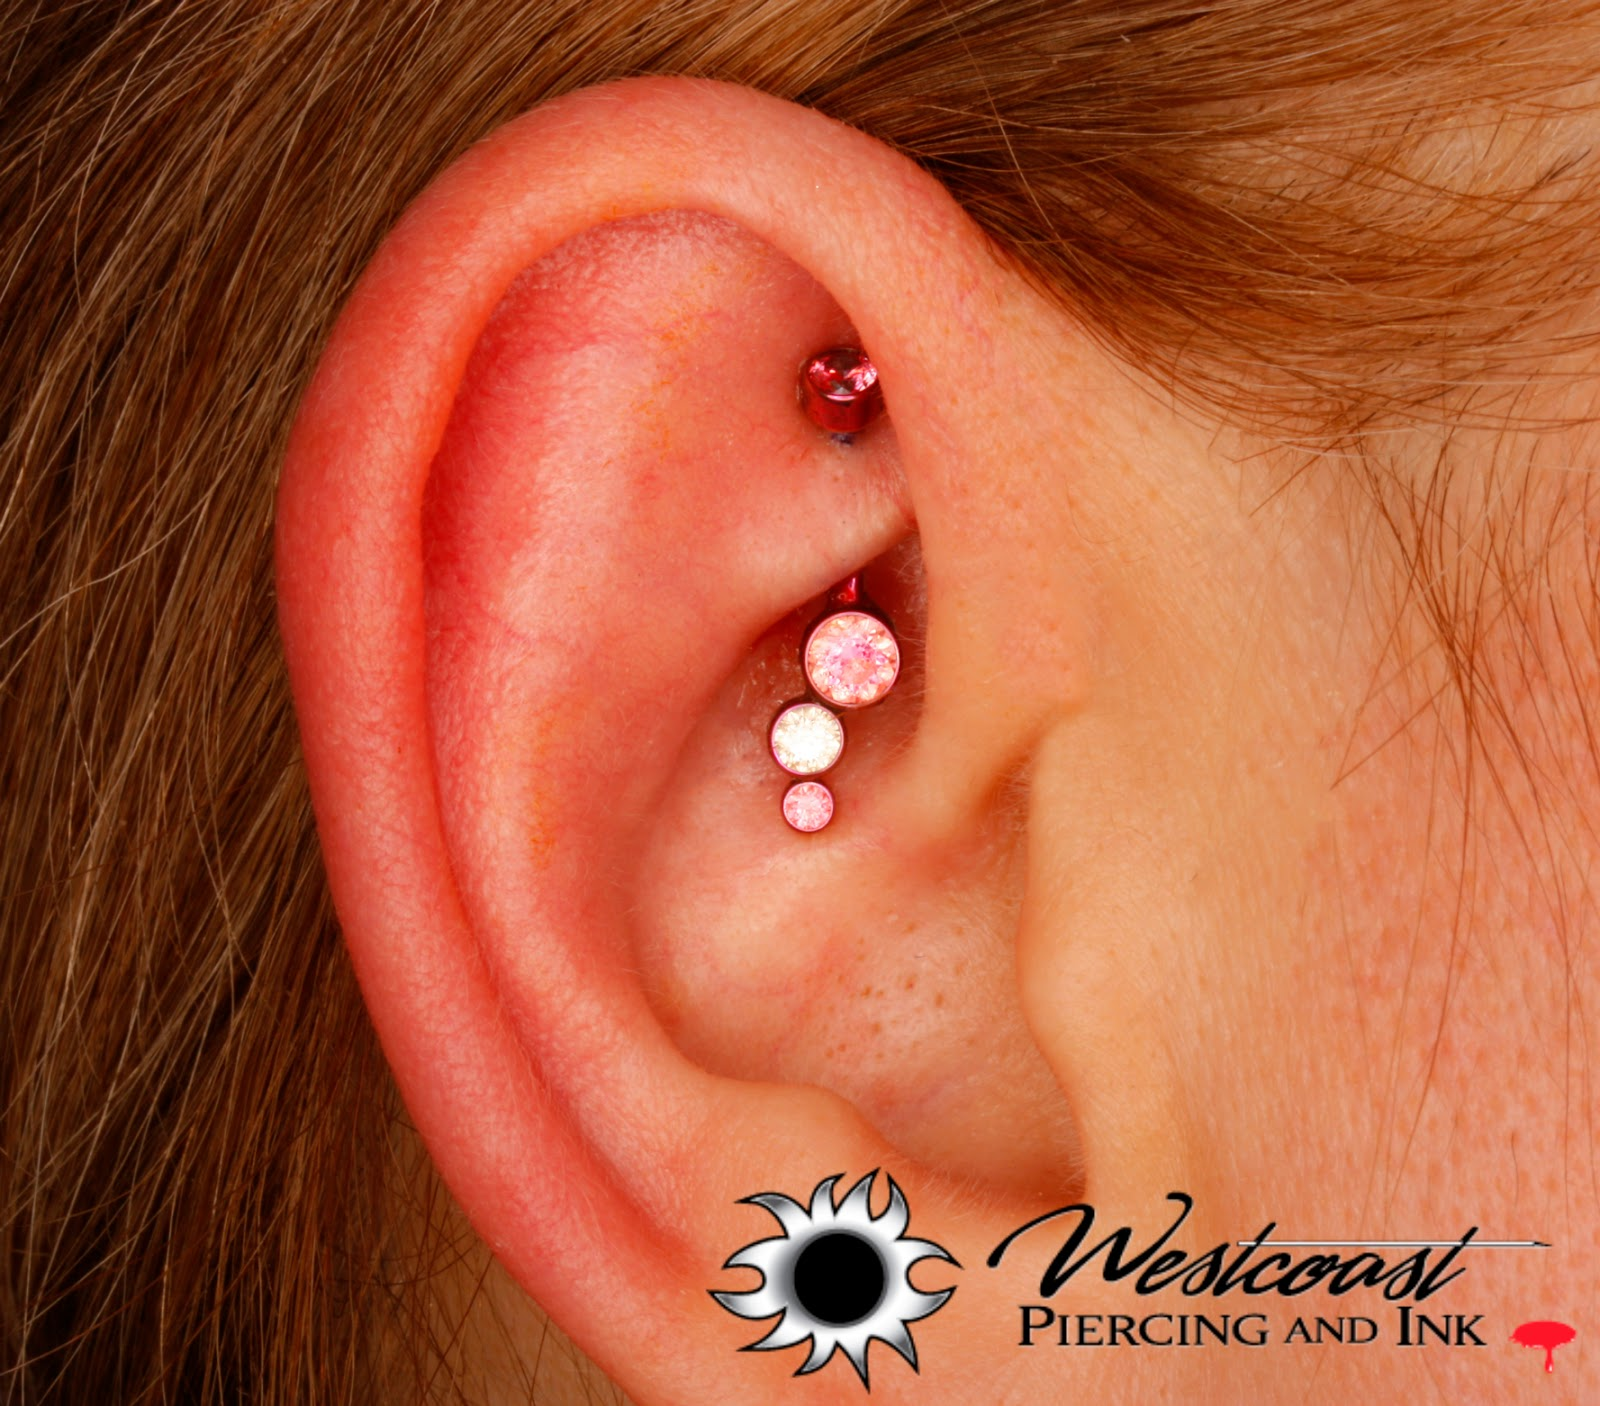 Westcoast Piercing And Ink Donna had her rook pierced with this